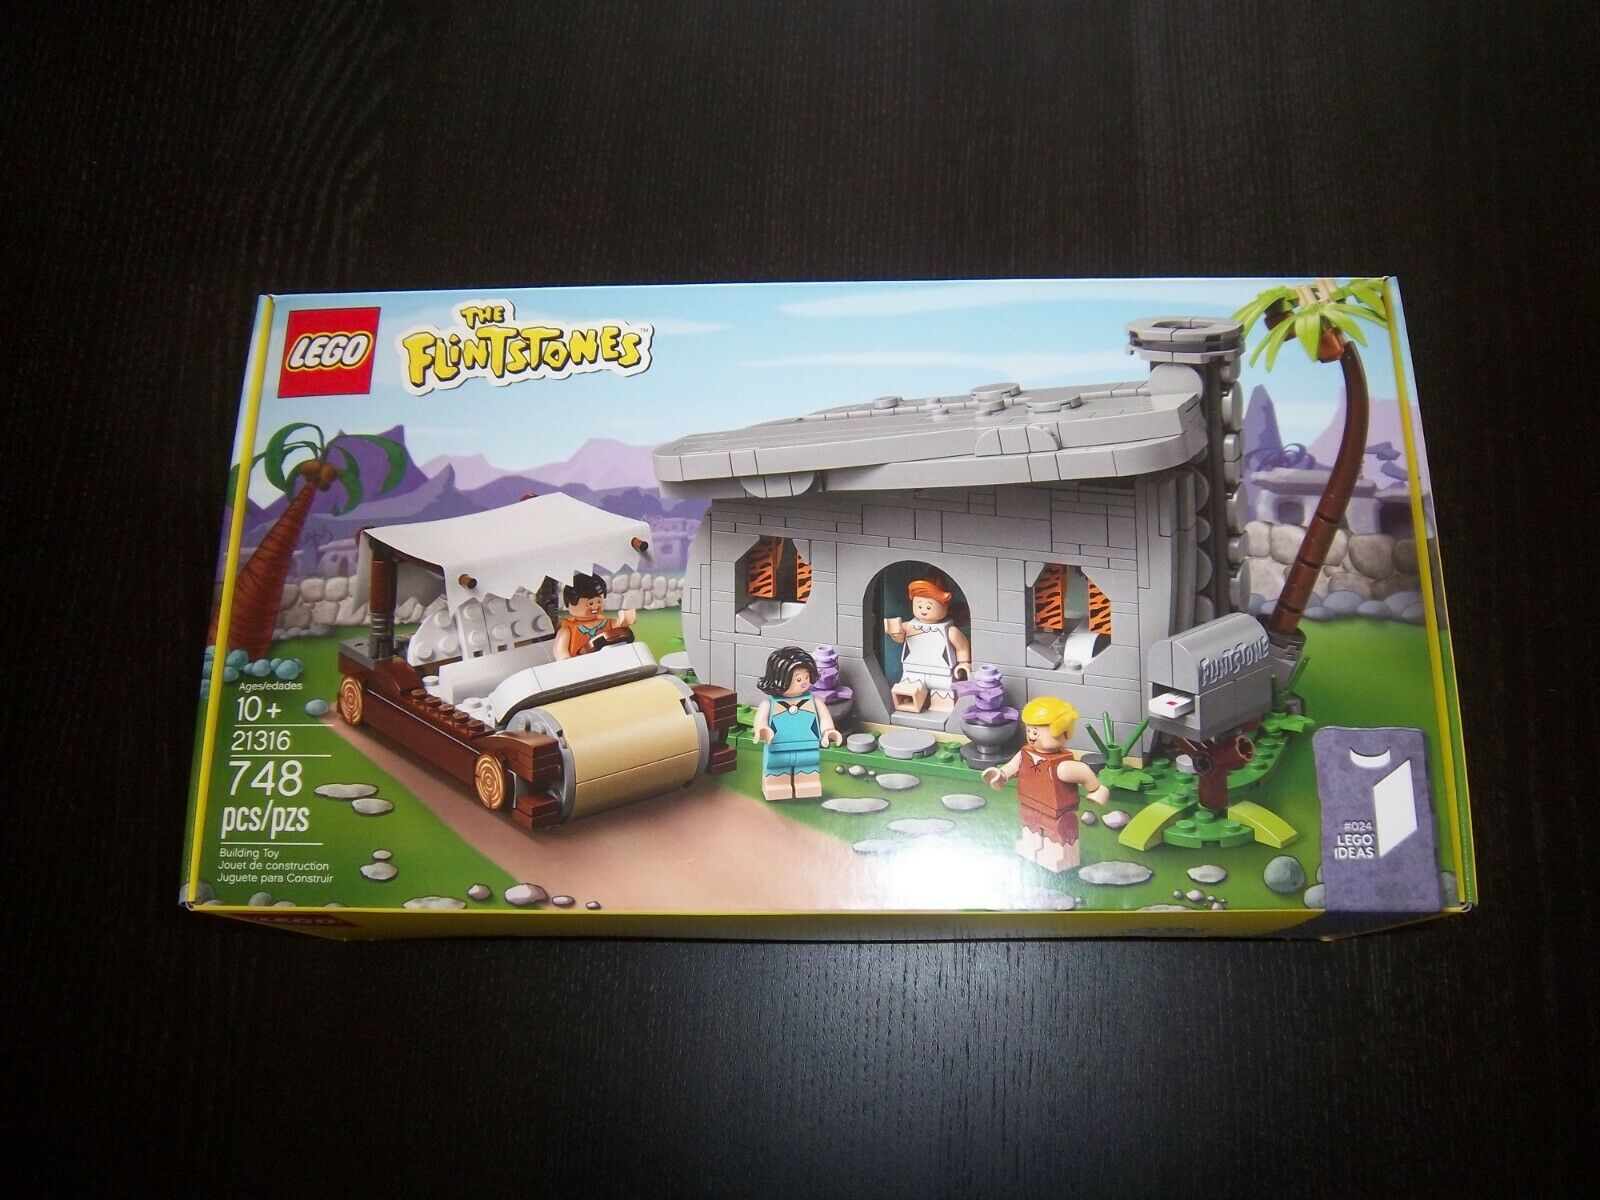 Ideas Lego Flintstones New Box Nsyfqg6654 The Complete In TuKFcl15J3